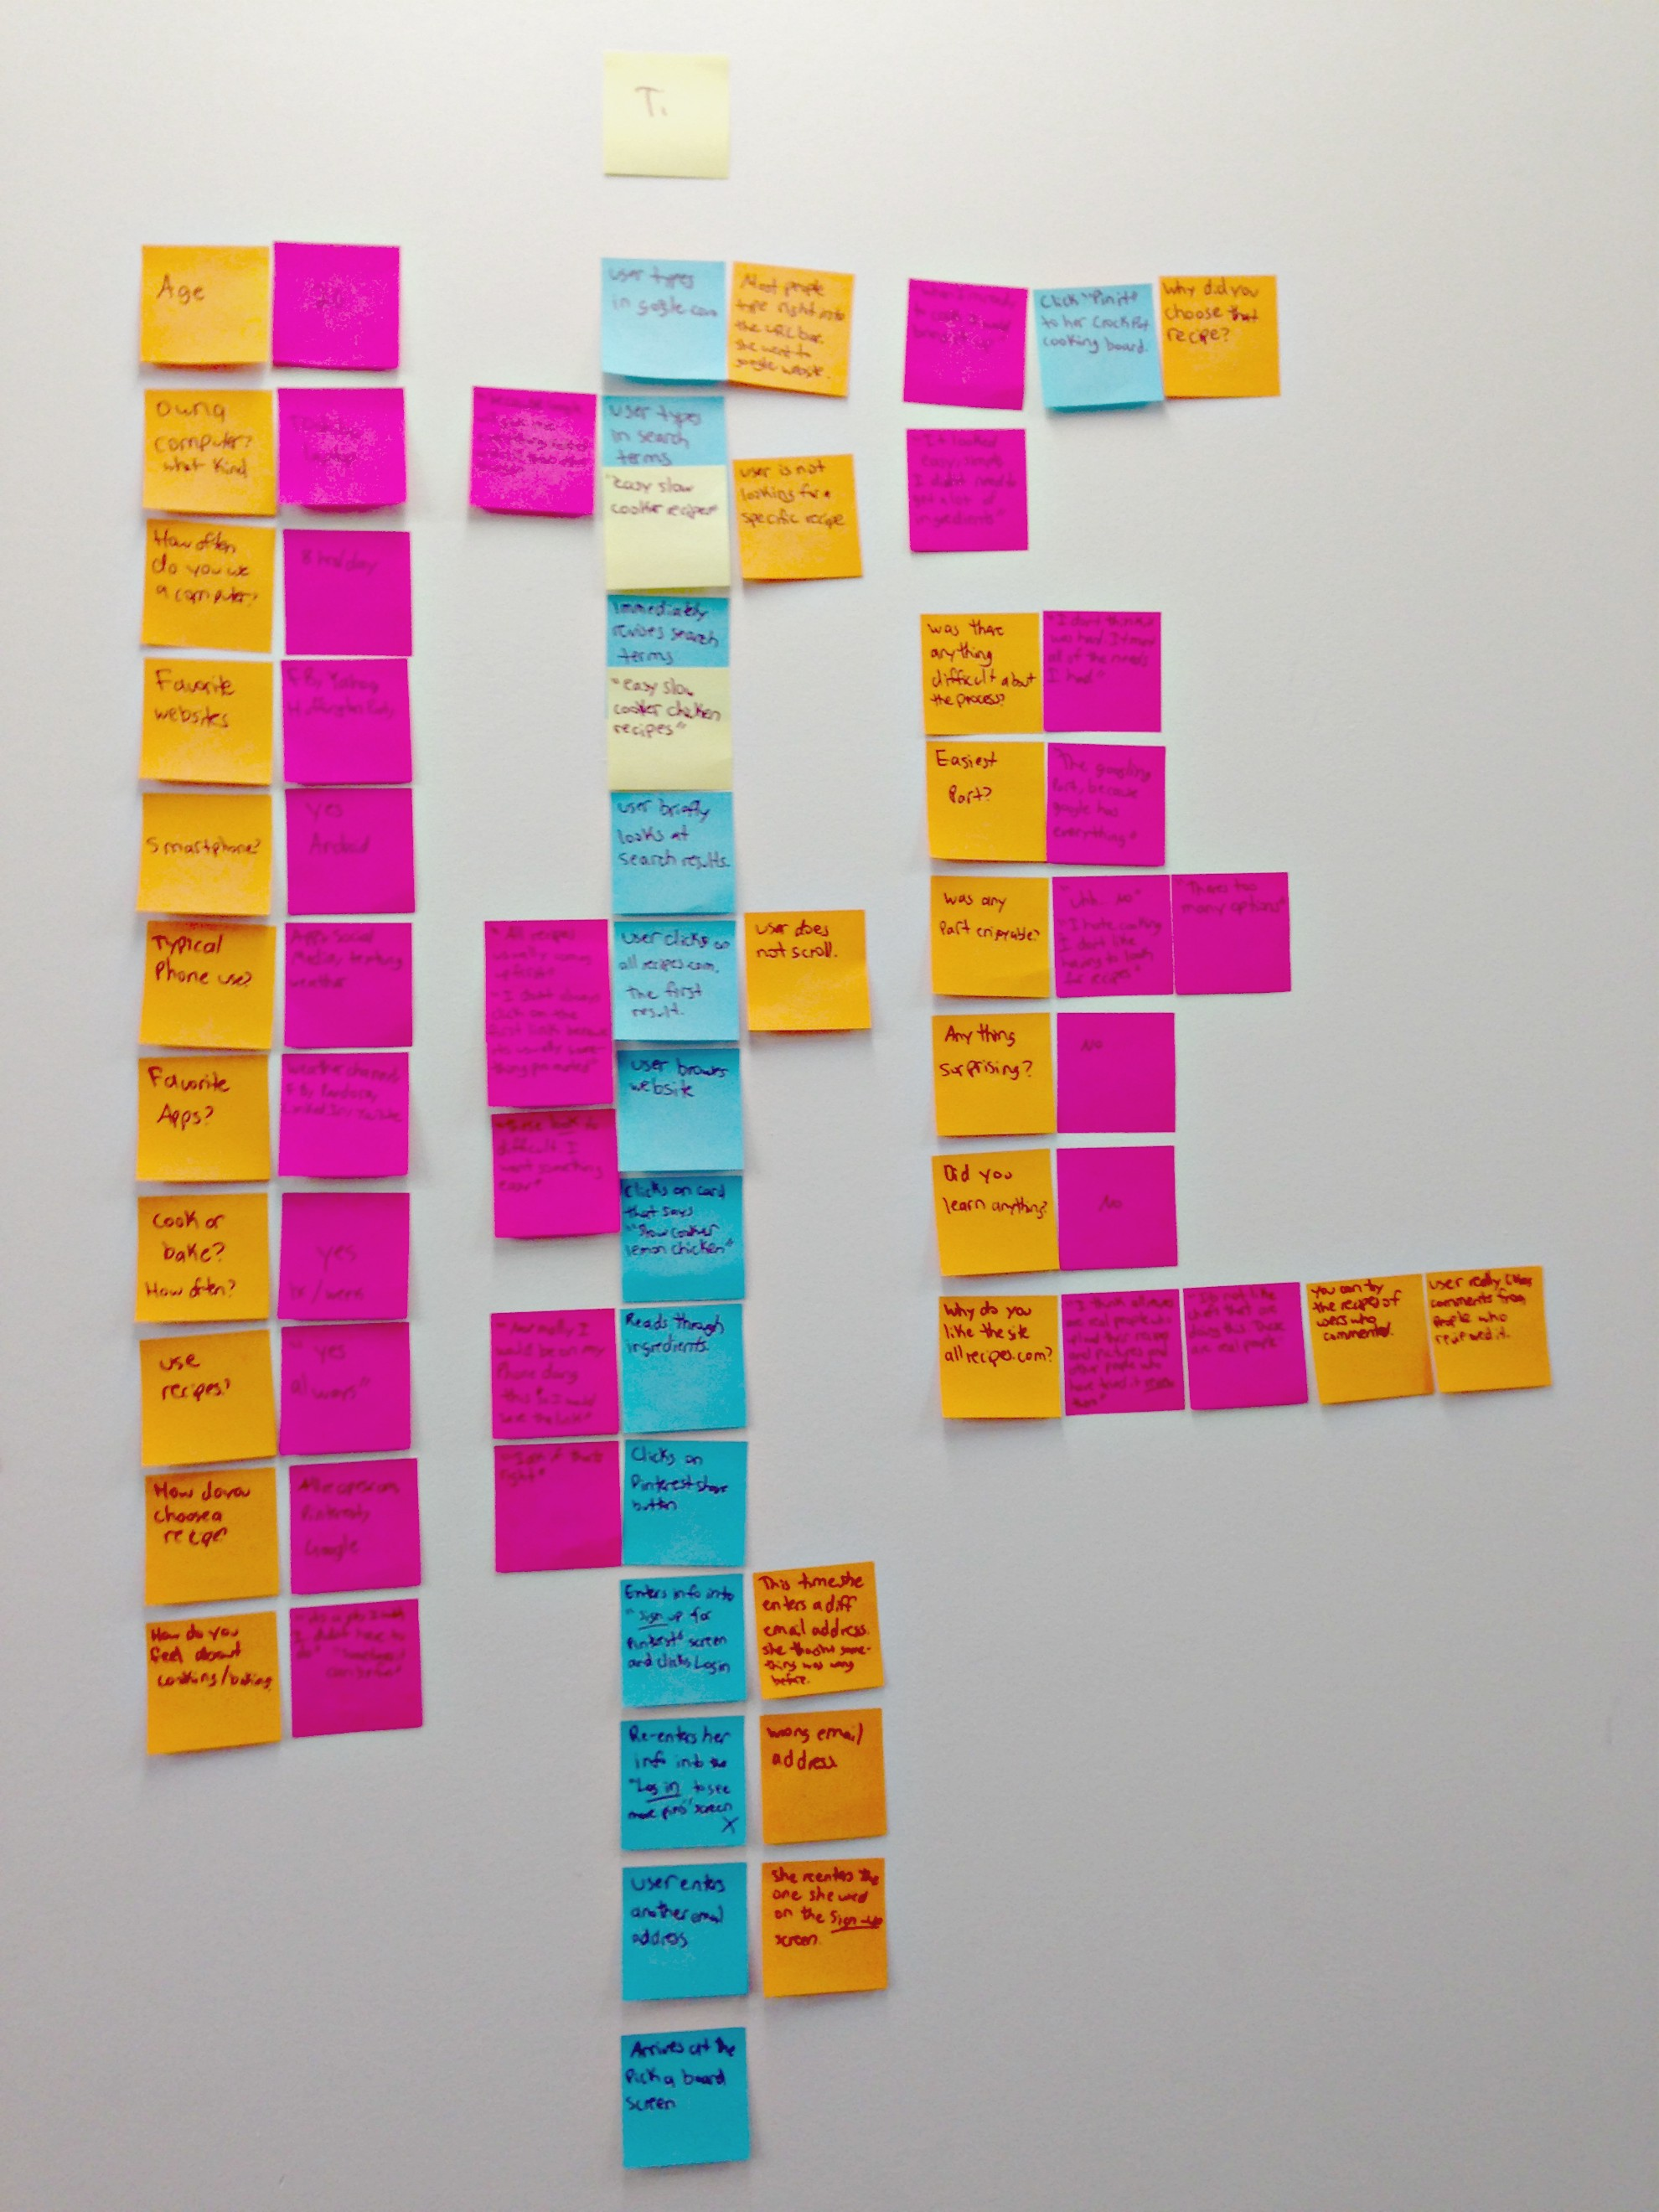 Affinity Diagrams Tips And Tricks